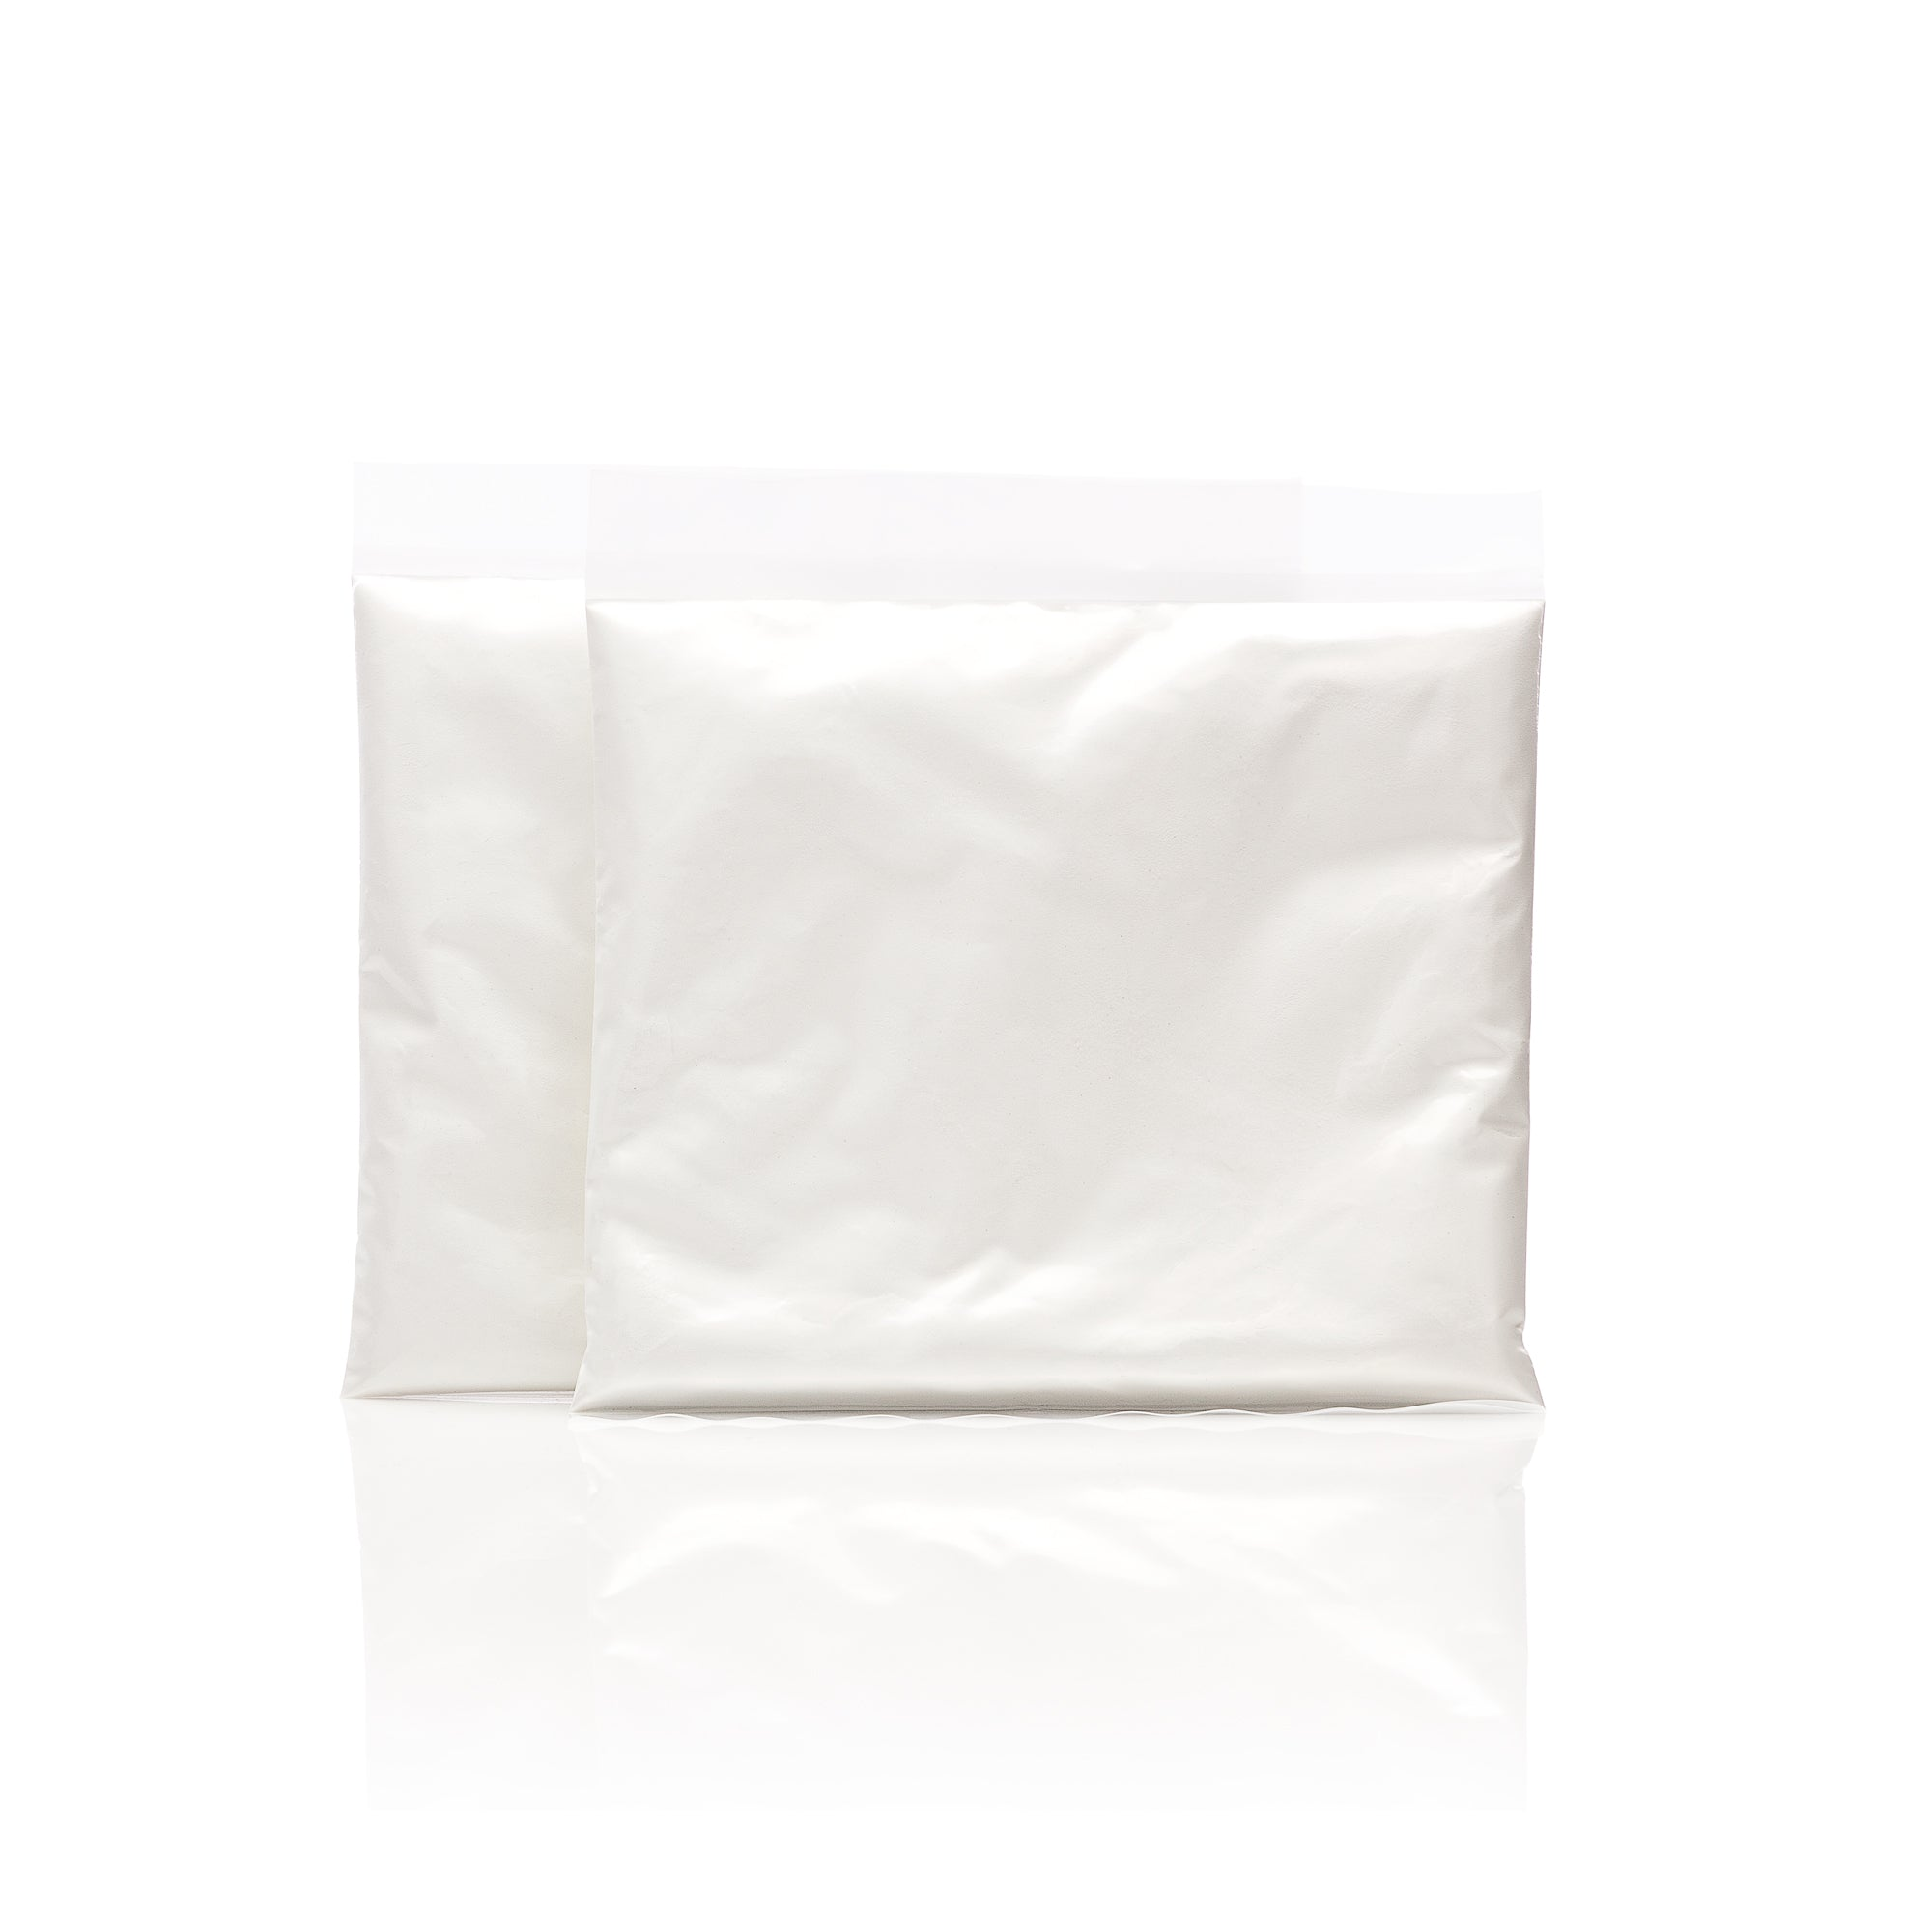 Molding Powder Refill (2 Bags)